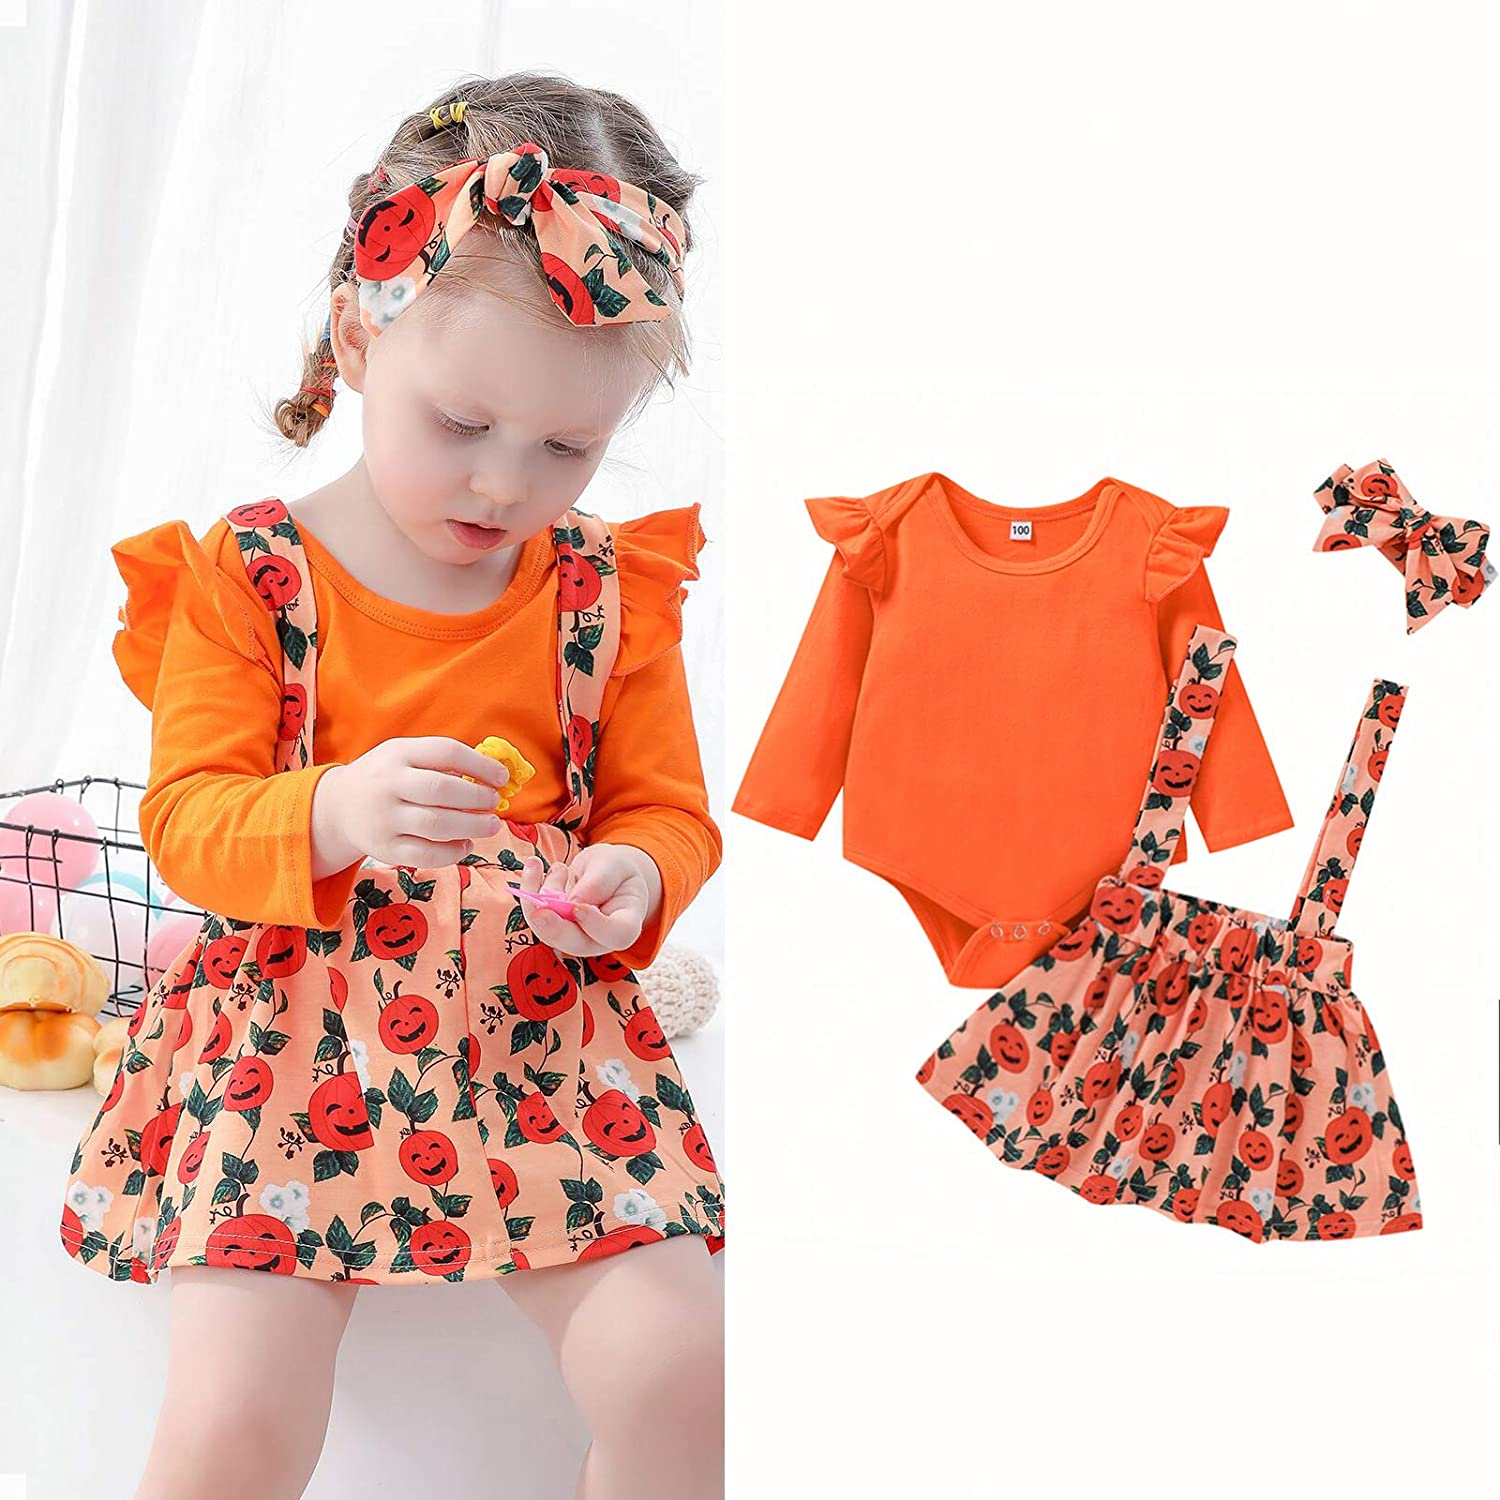 Halloween Toddle Infant Baby Girl Clothes Ruffle Romper Top Suspender Pumpkin Skirt Outfit Set with Headband 3Pcs Set /…